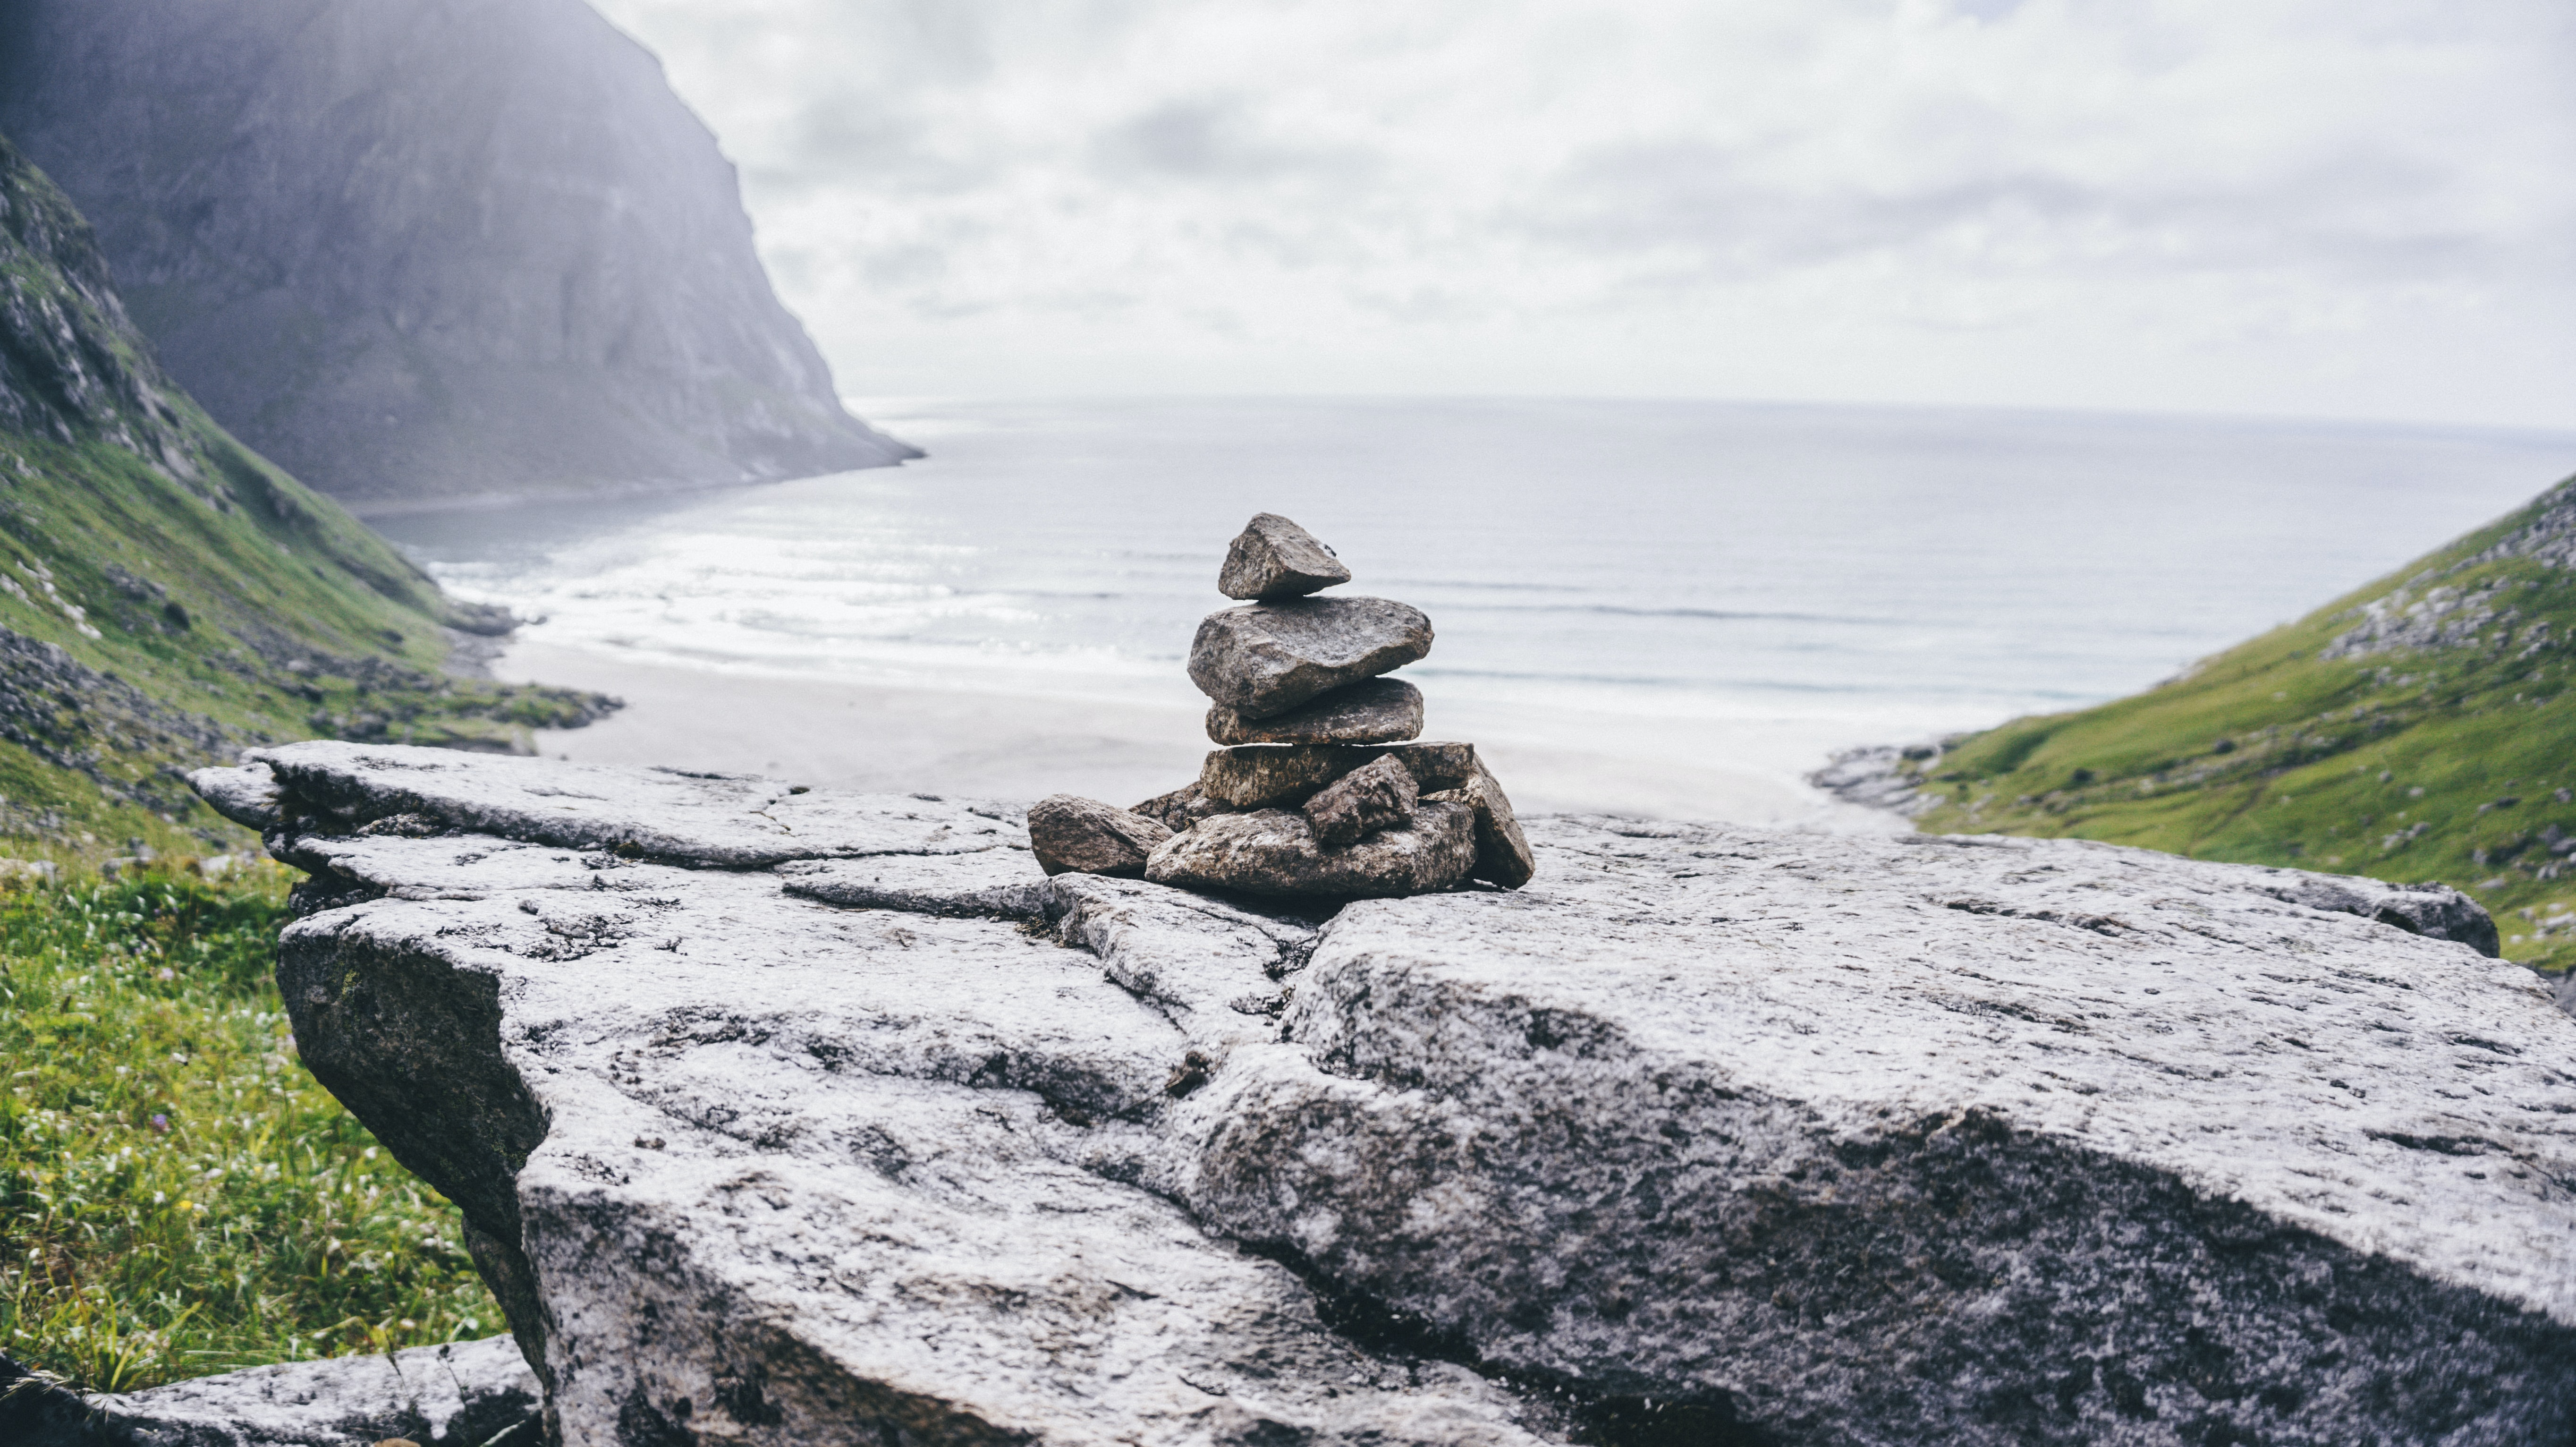 cairn stones on rock formation